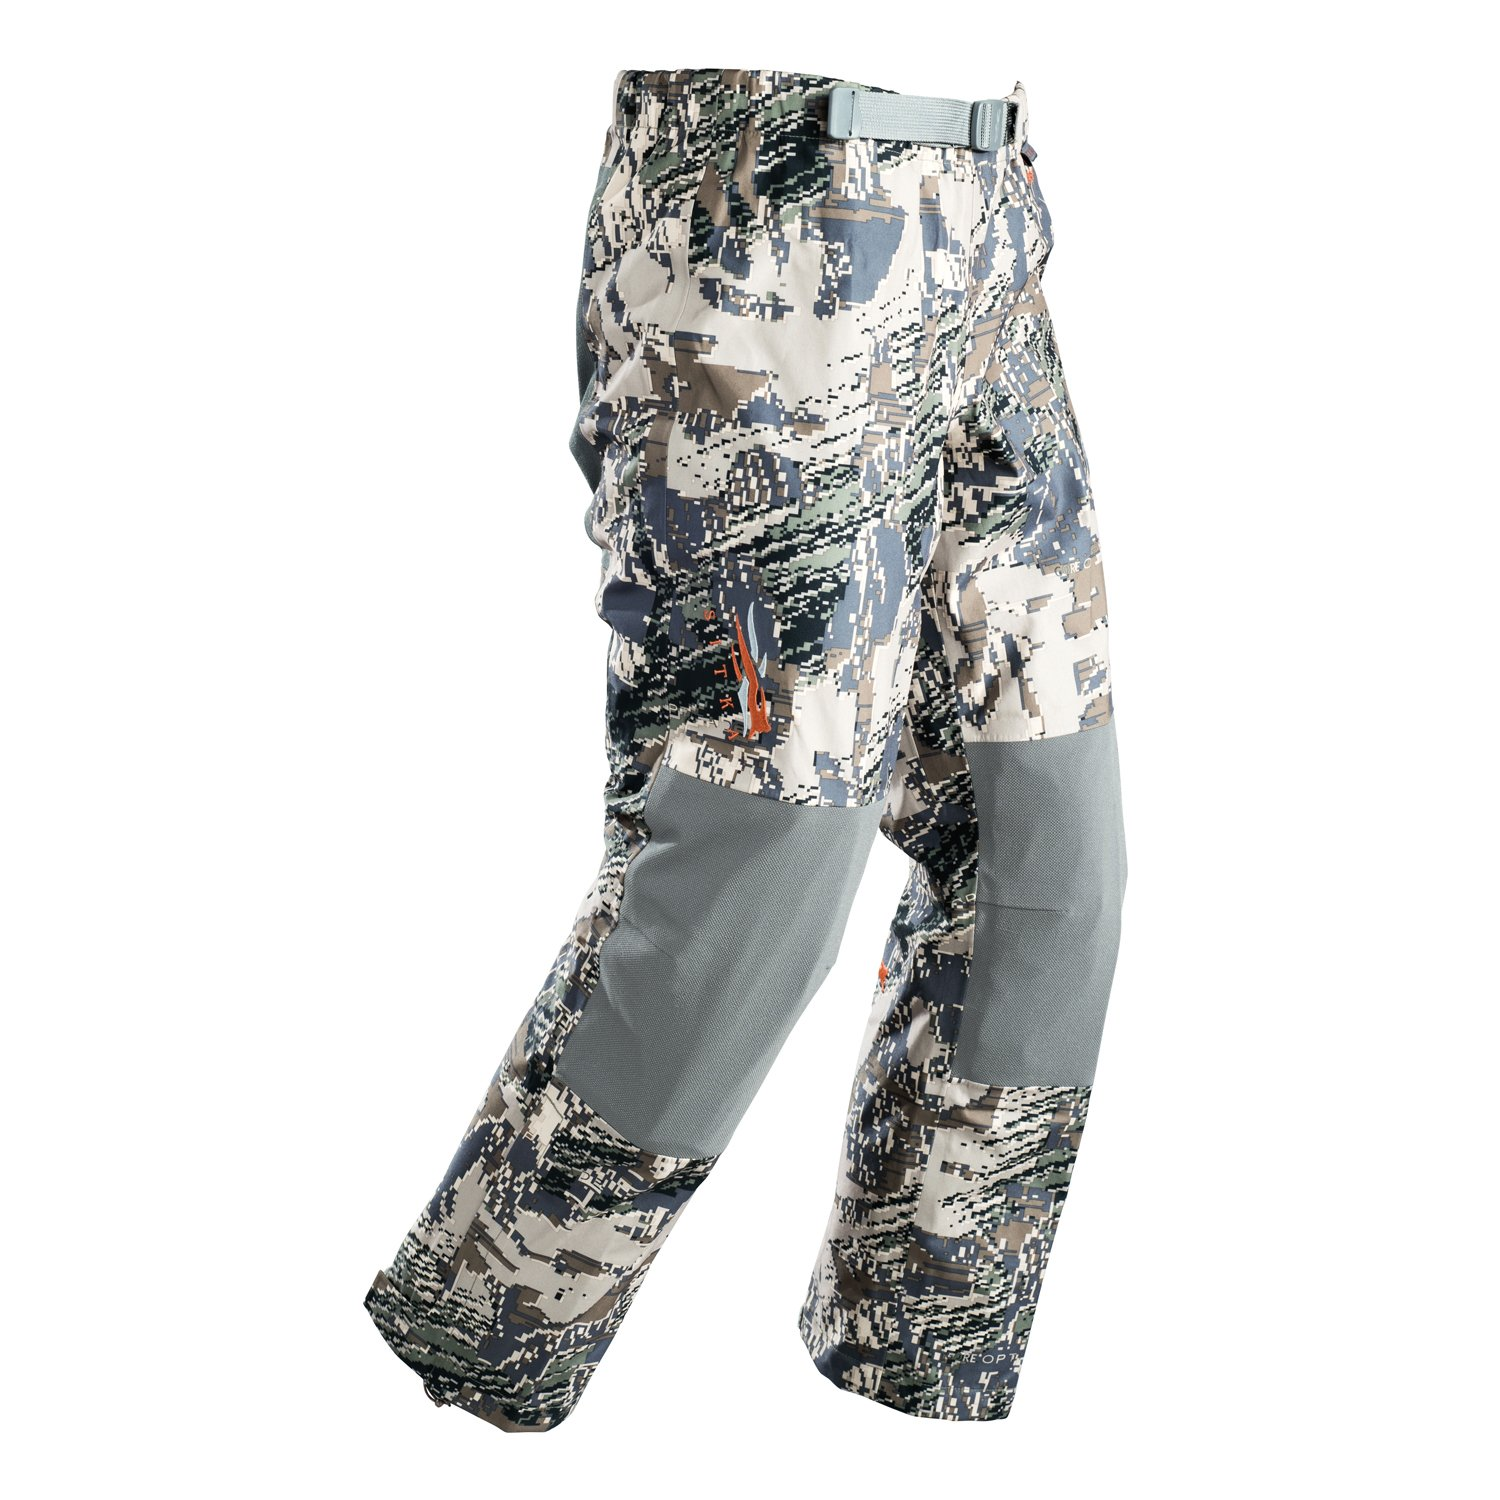 SITKA Gear Cyclone Pant Optifade Open Country Youth Small - Discontinued